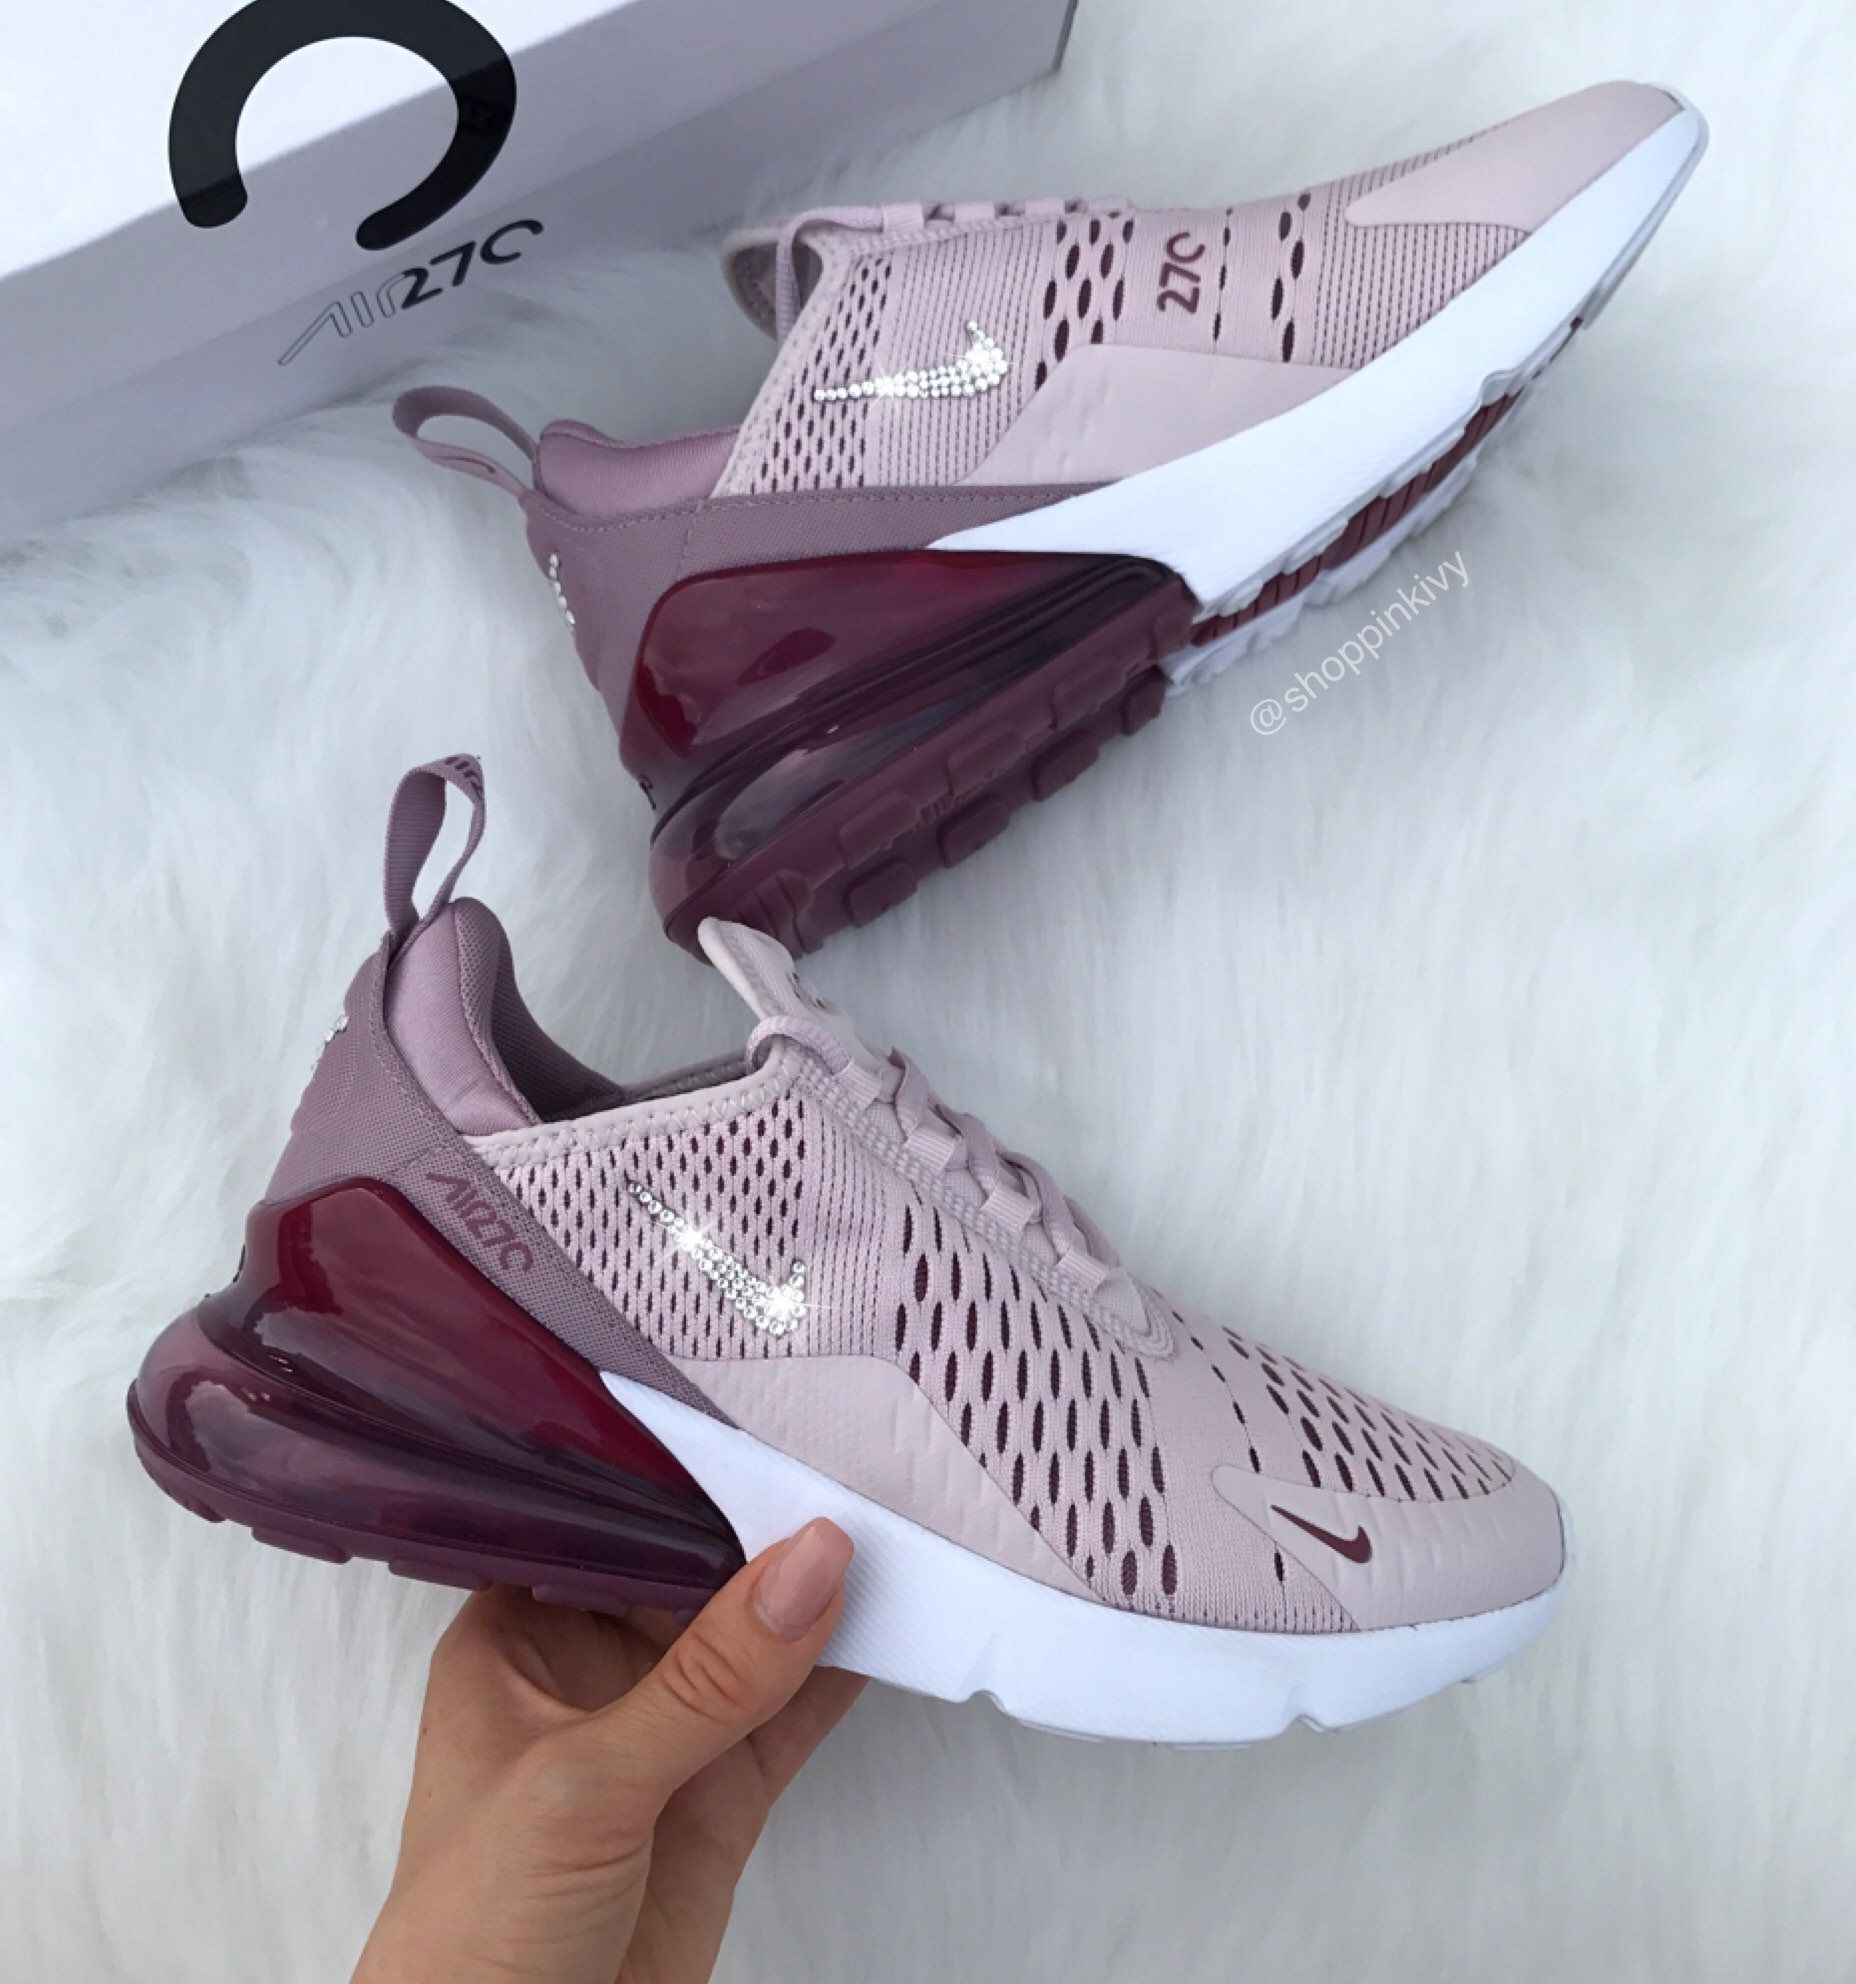 Air Max 270 Pink | Shoe boots, Shoes, Outfit shoes